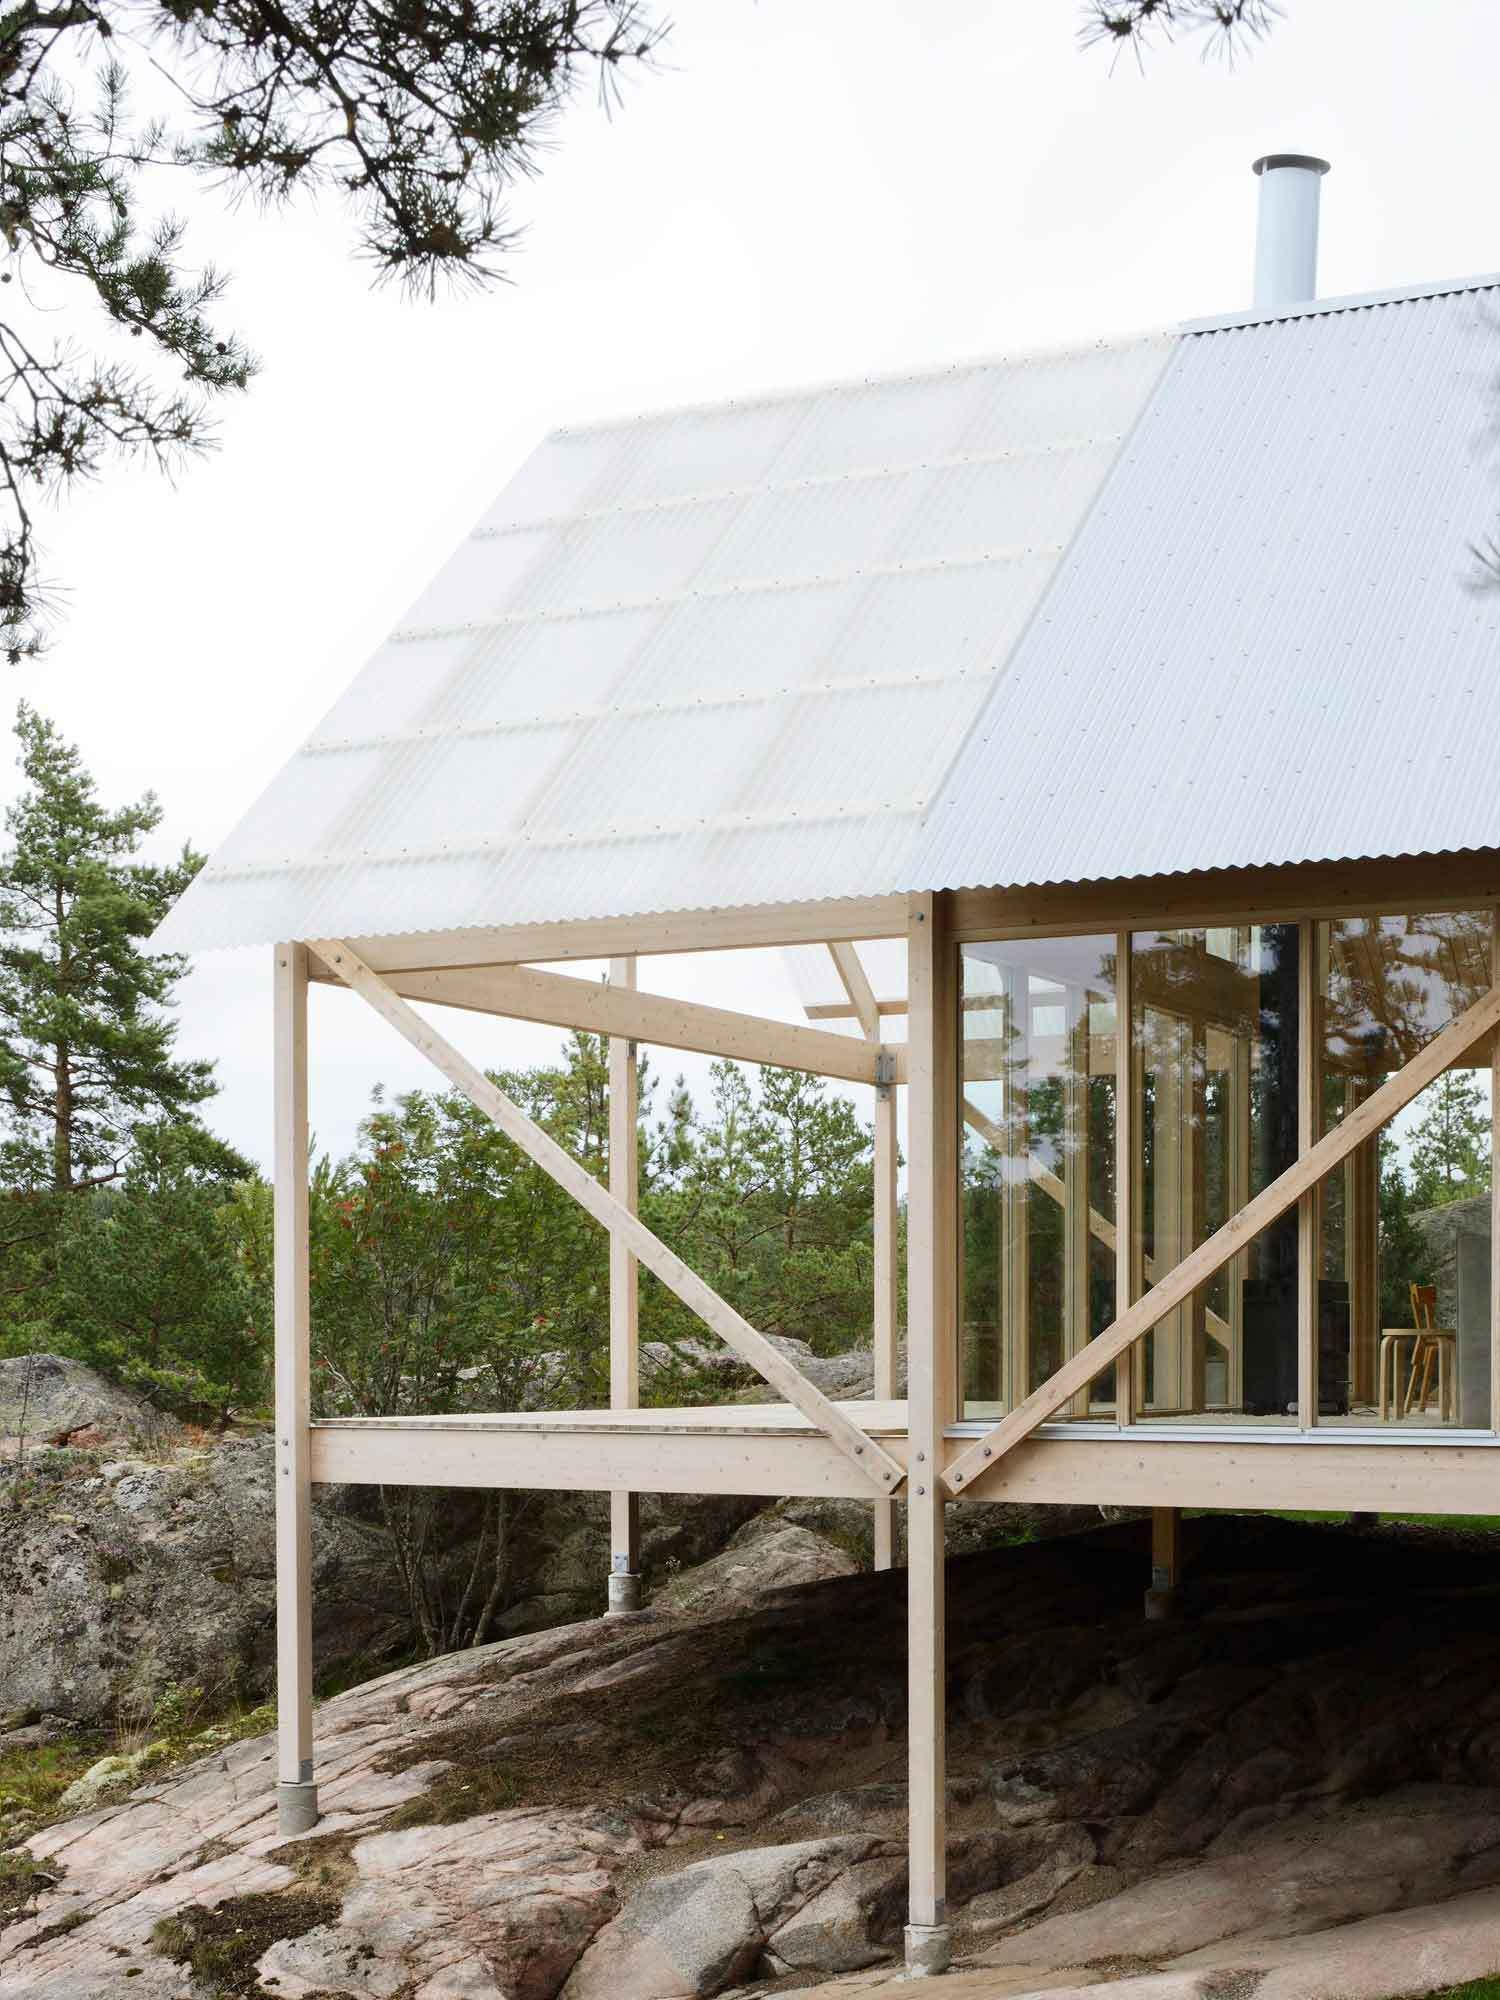 Viggsö Island House in Sweden by Arrhov Frick. | Exteriors ...